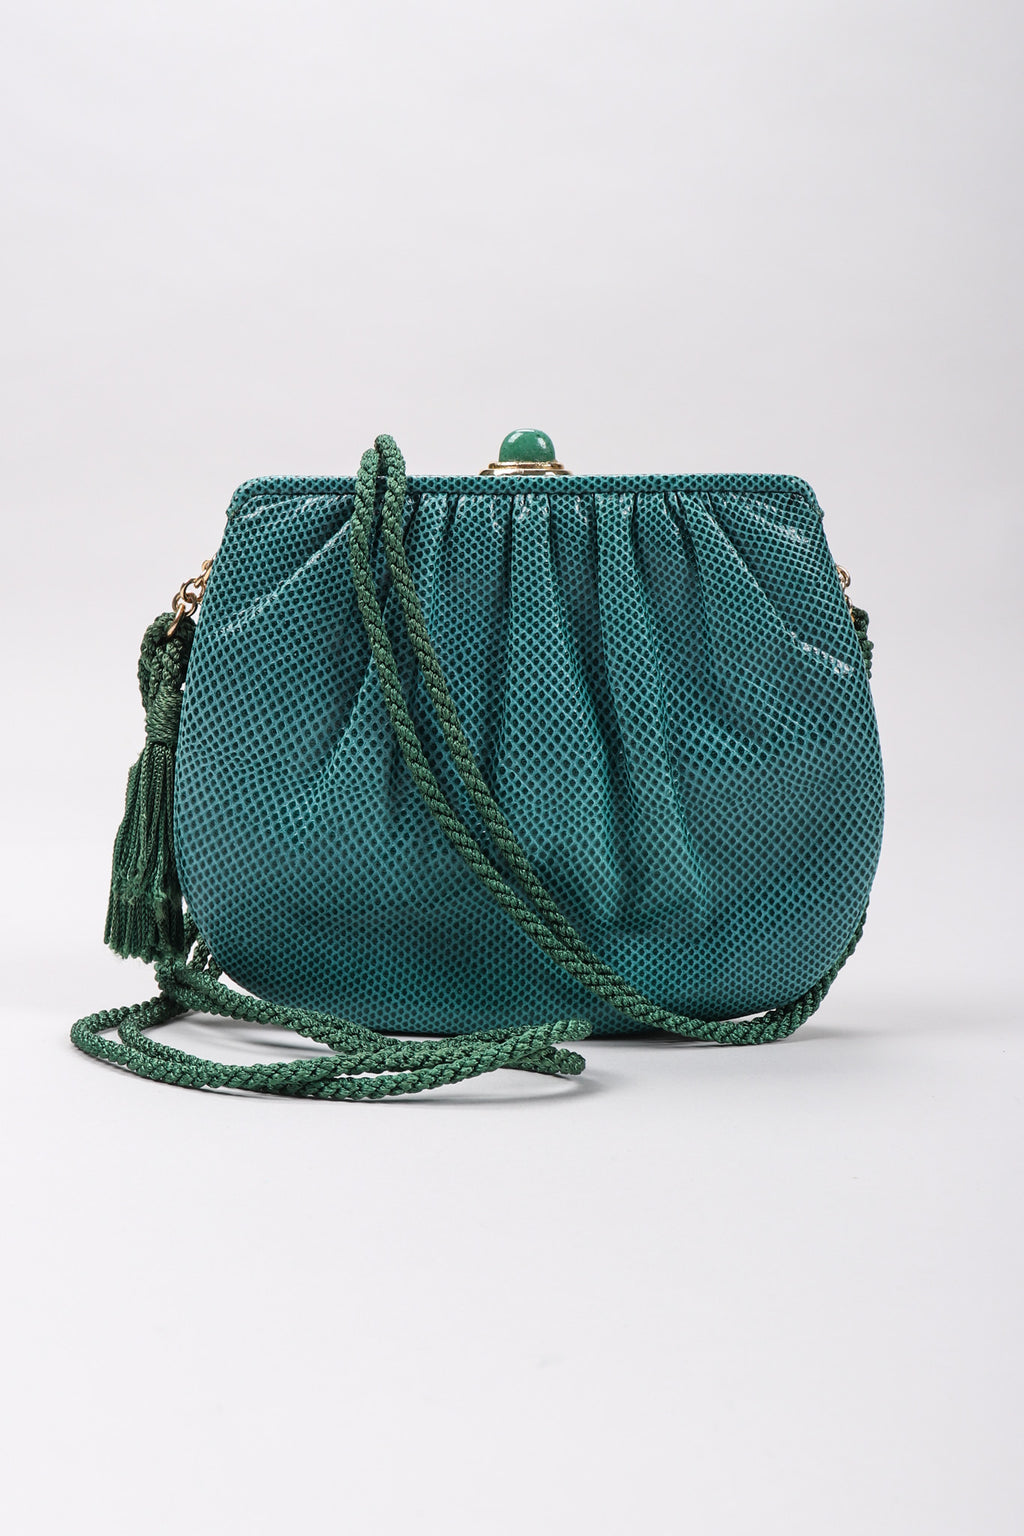 f15dc538bb75 Recess Los Angeles Vintage Judith Leiber Teal Lizard Tassel Bag